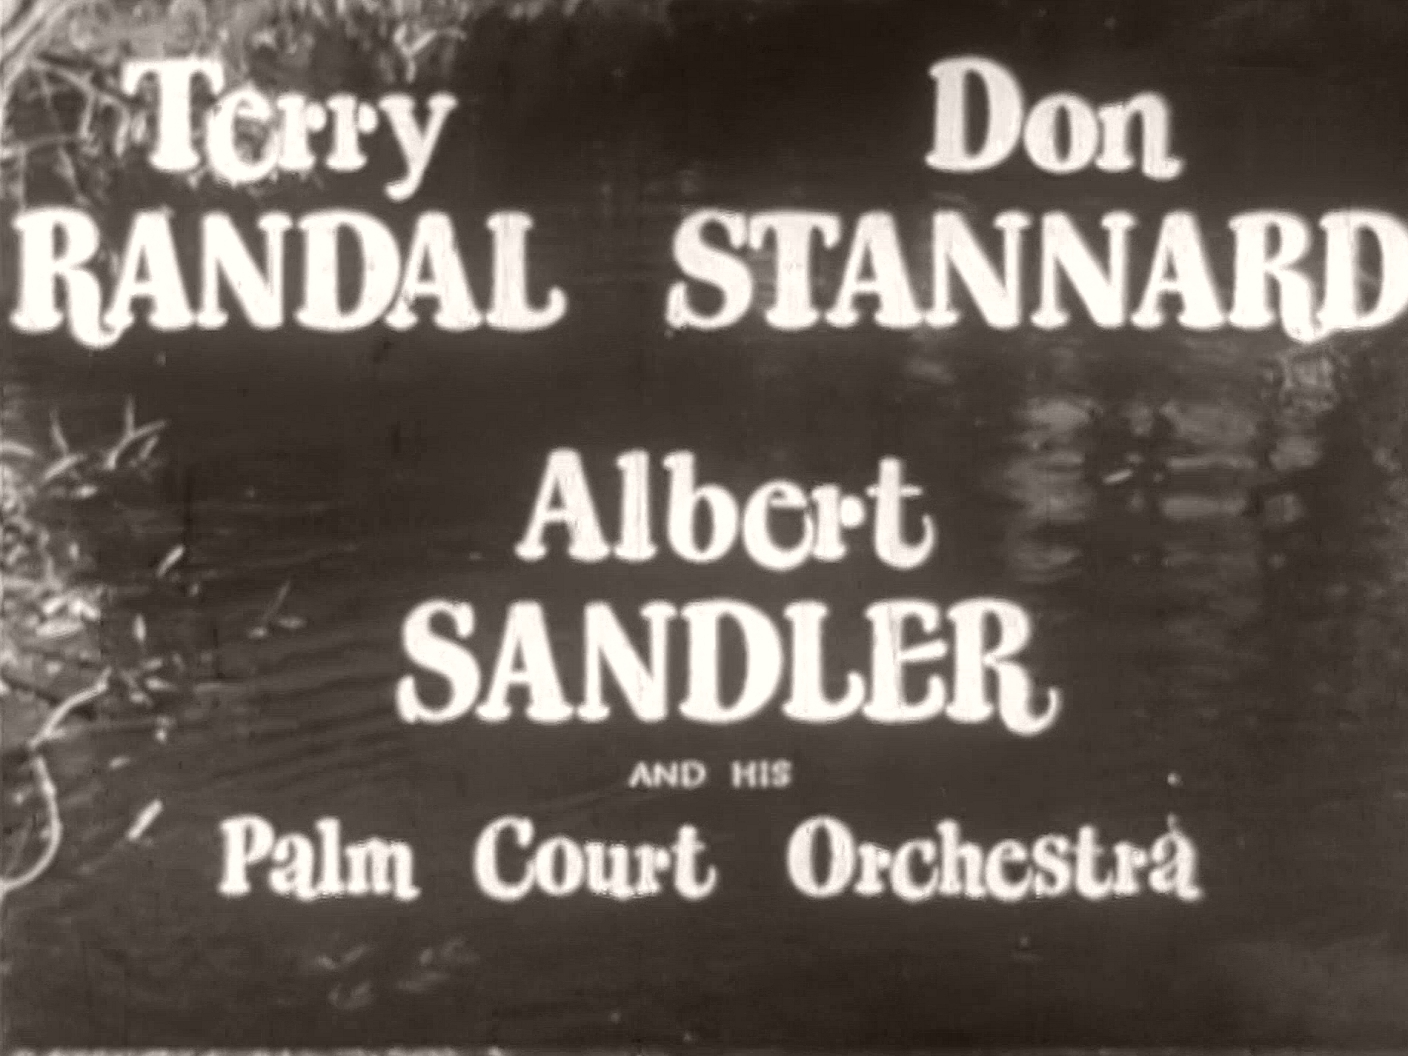 Main title from I'll Turn to You (1946) (2). Terry Randall, Don Stannard, Albert Sandler and his Palm Court Orchestra